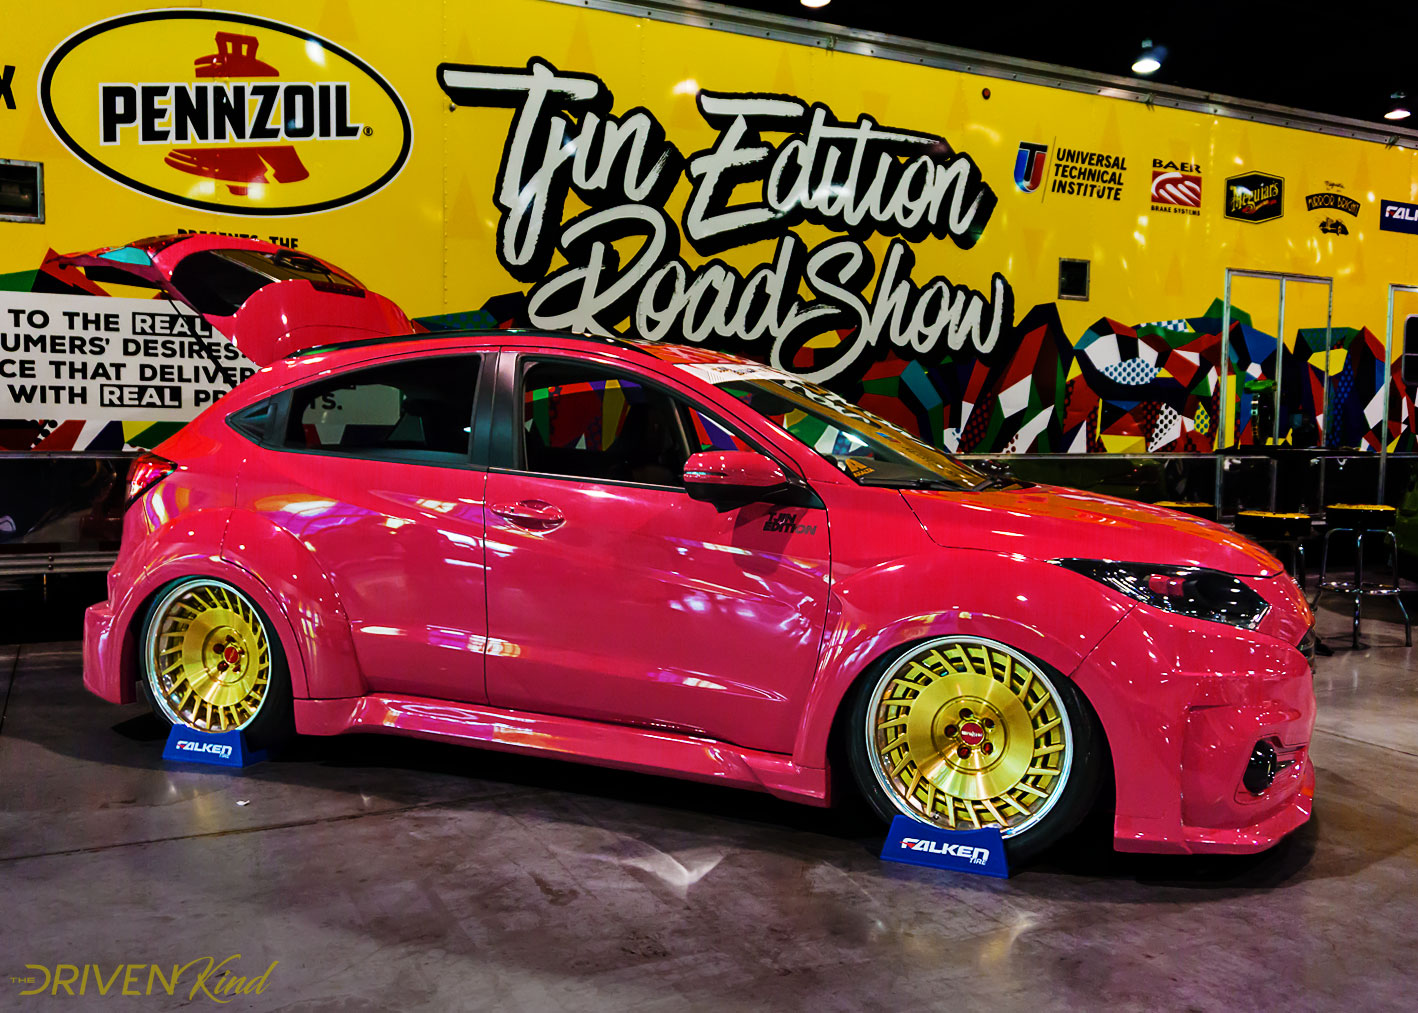 Tuner Evolution Car Show Coverage Daytona Beach by The Driven Kind